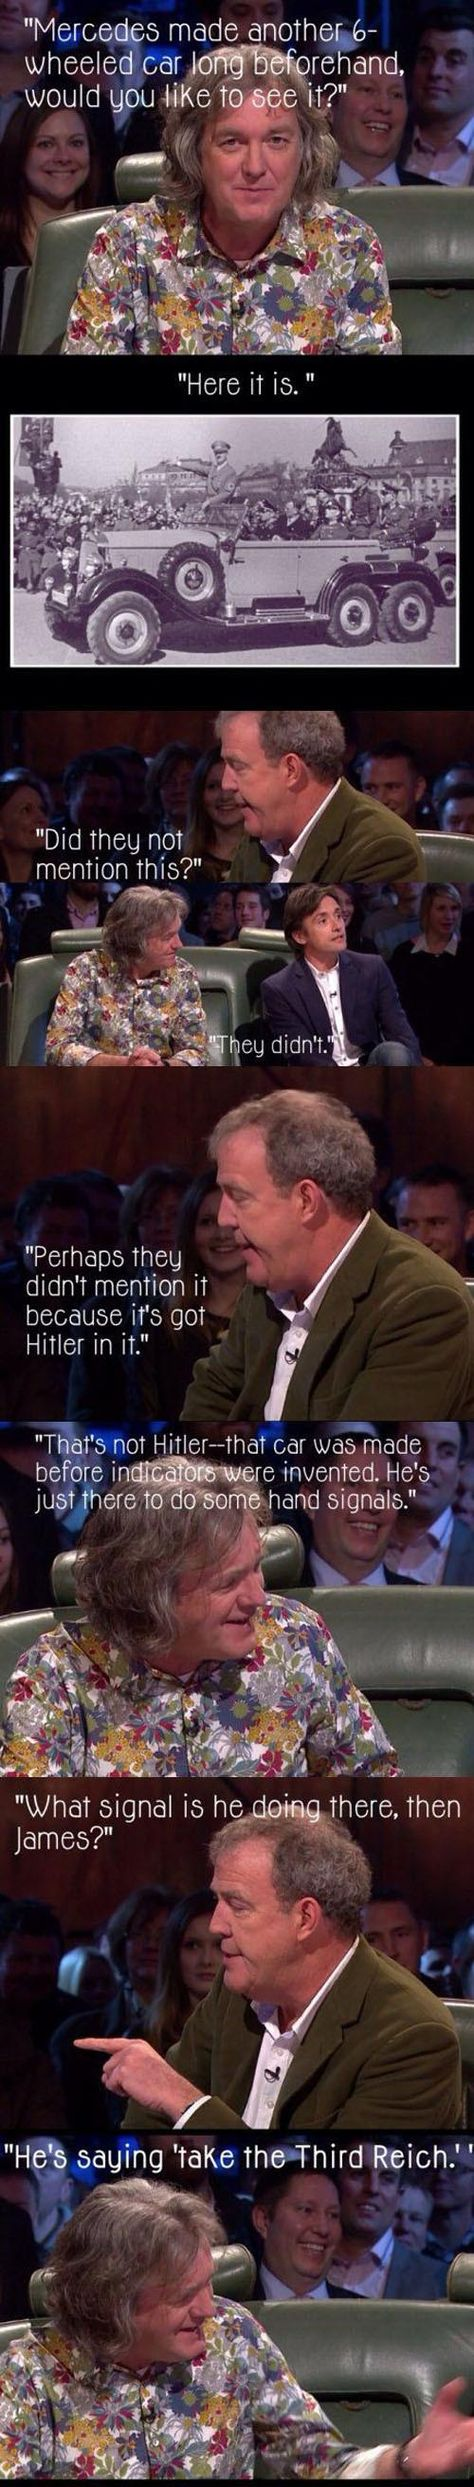 6 wheeled Mercedes on Top Gear